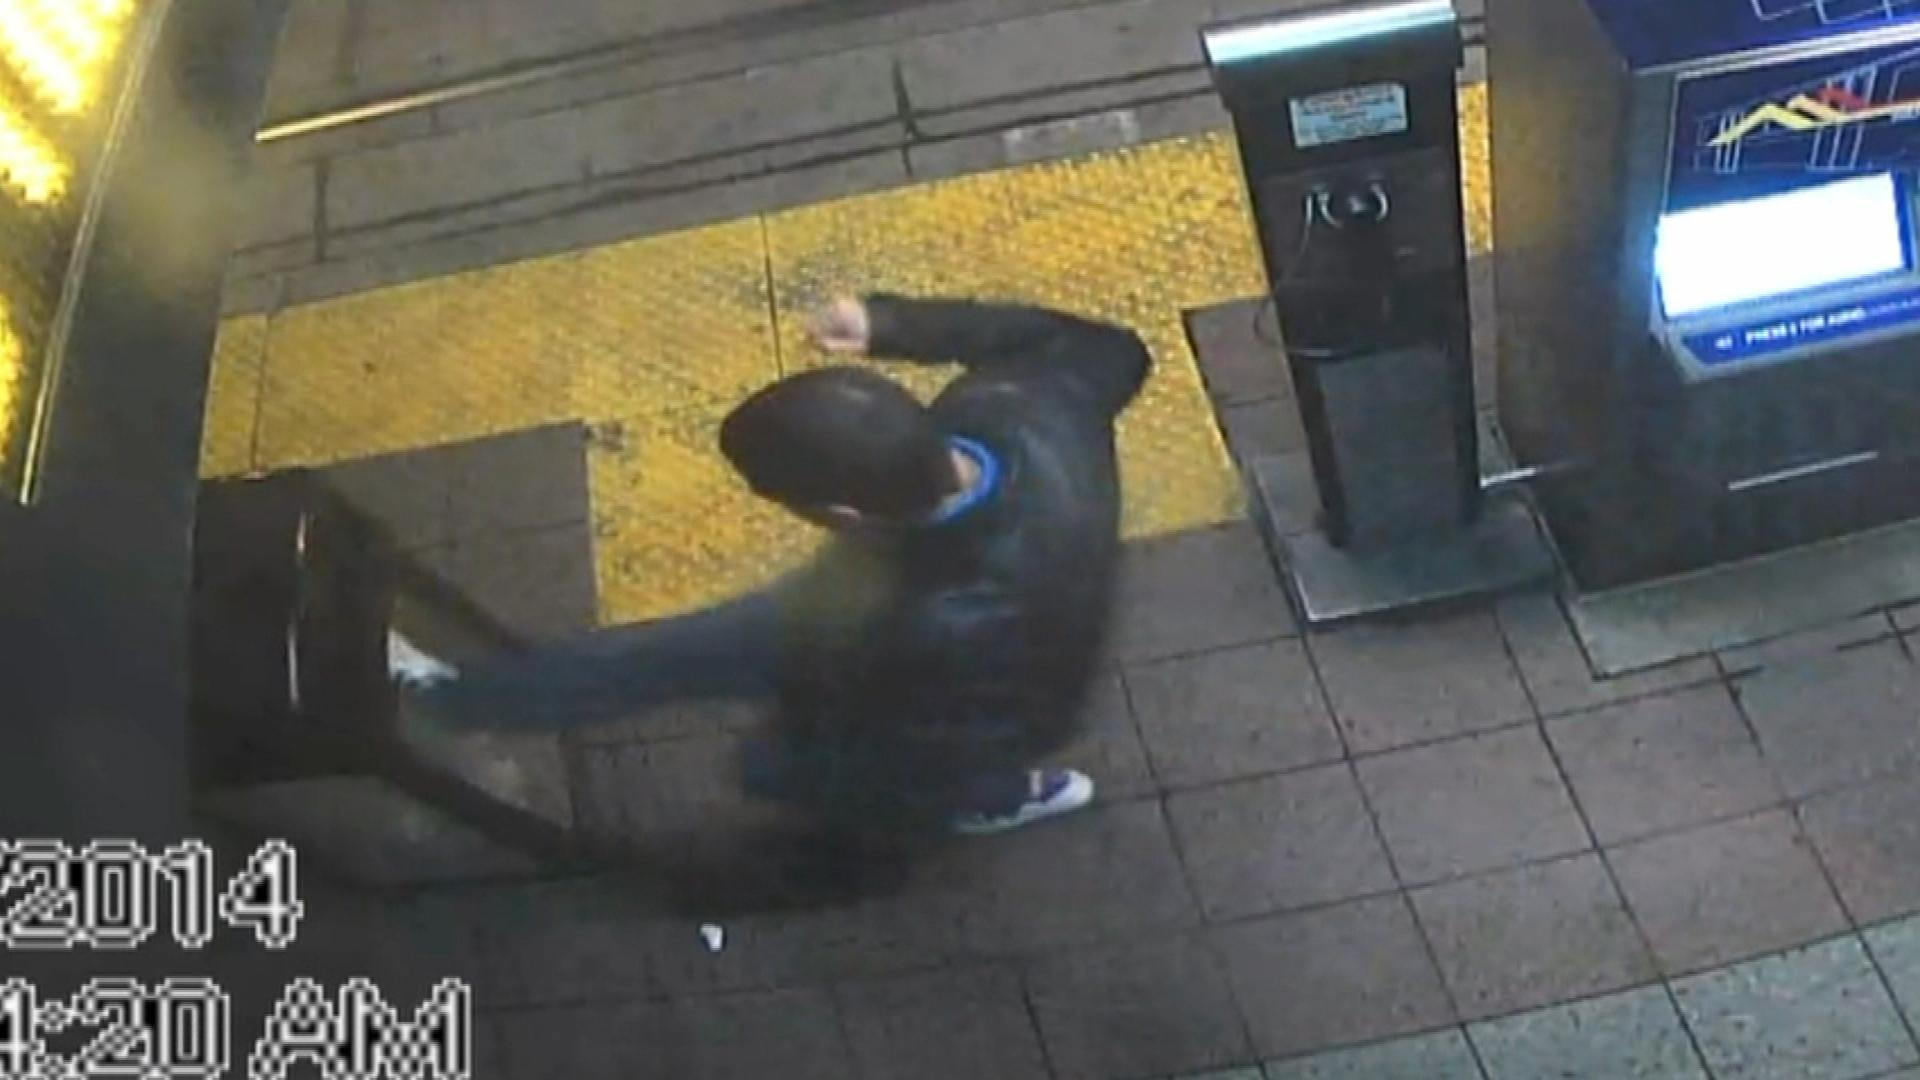 A man kicking RTD property is caught on surveillance footage. (credit: RTD)